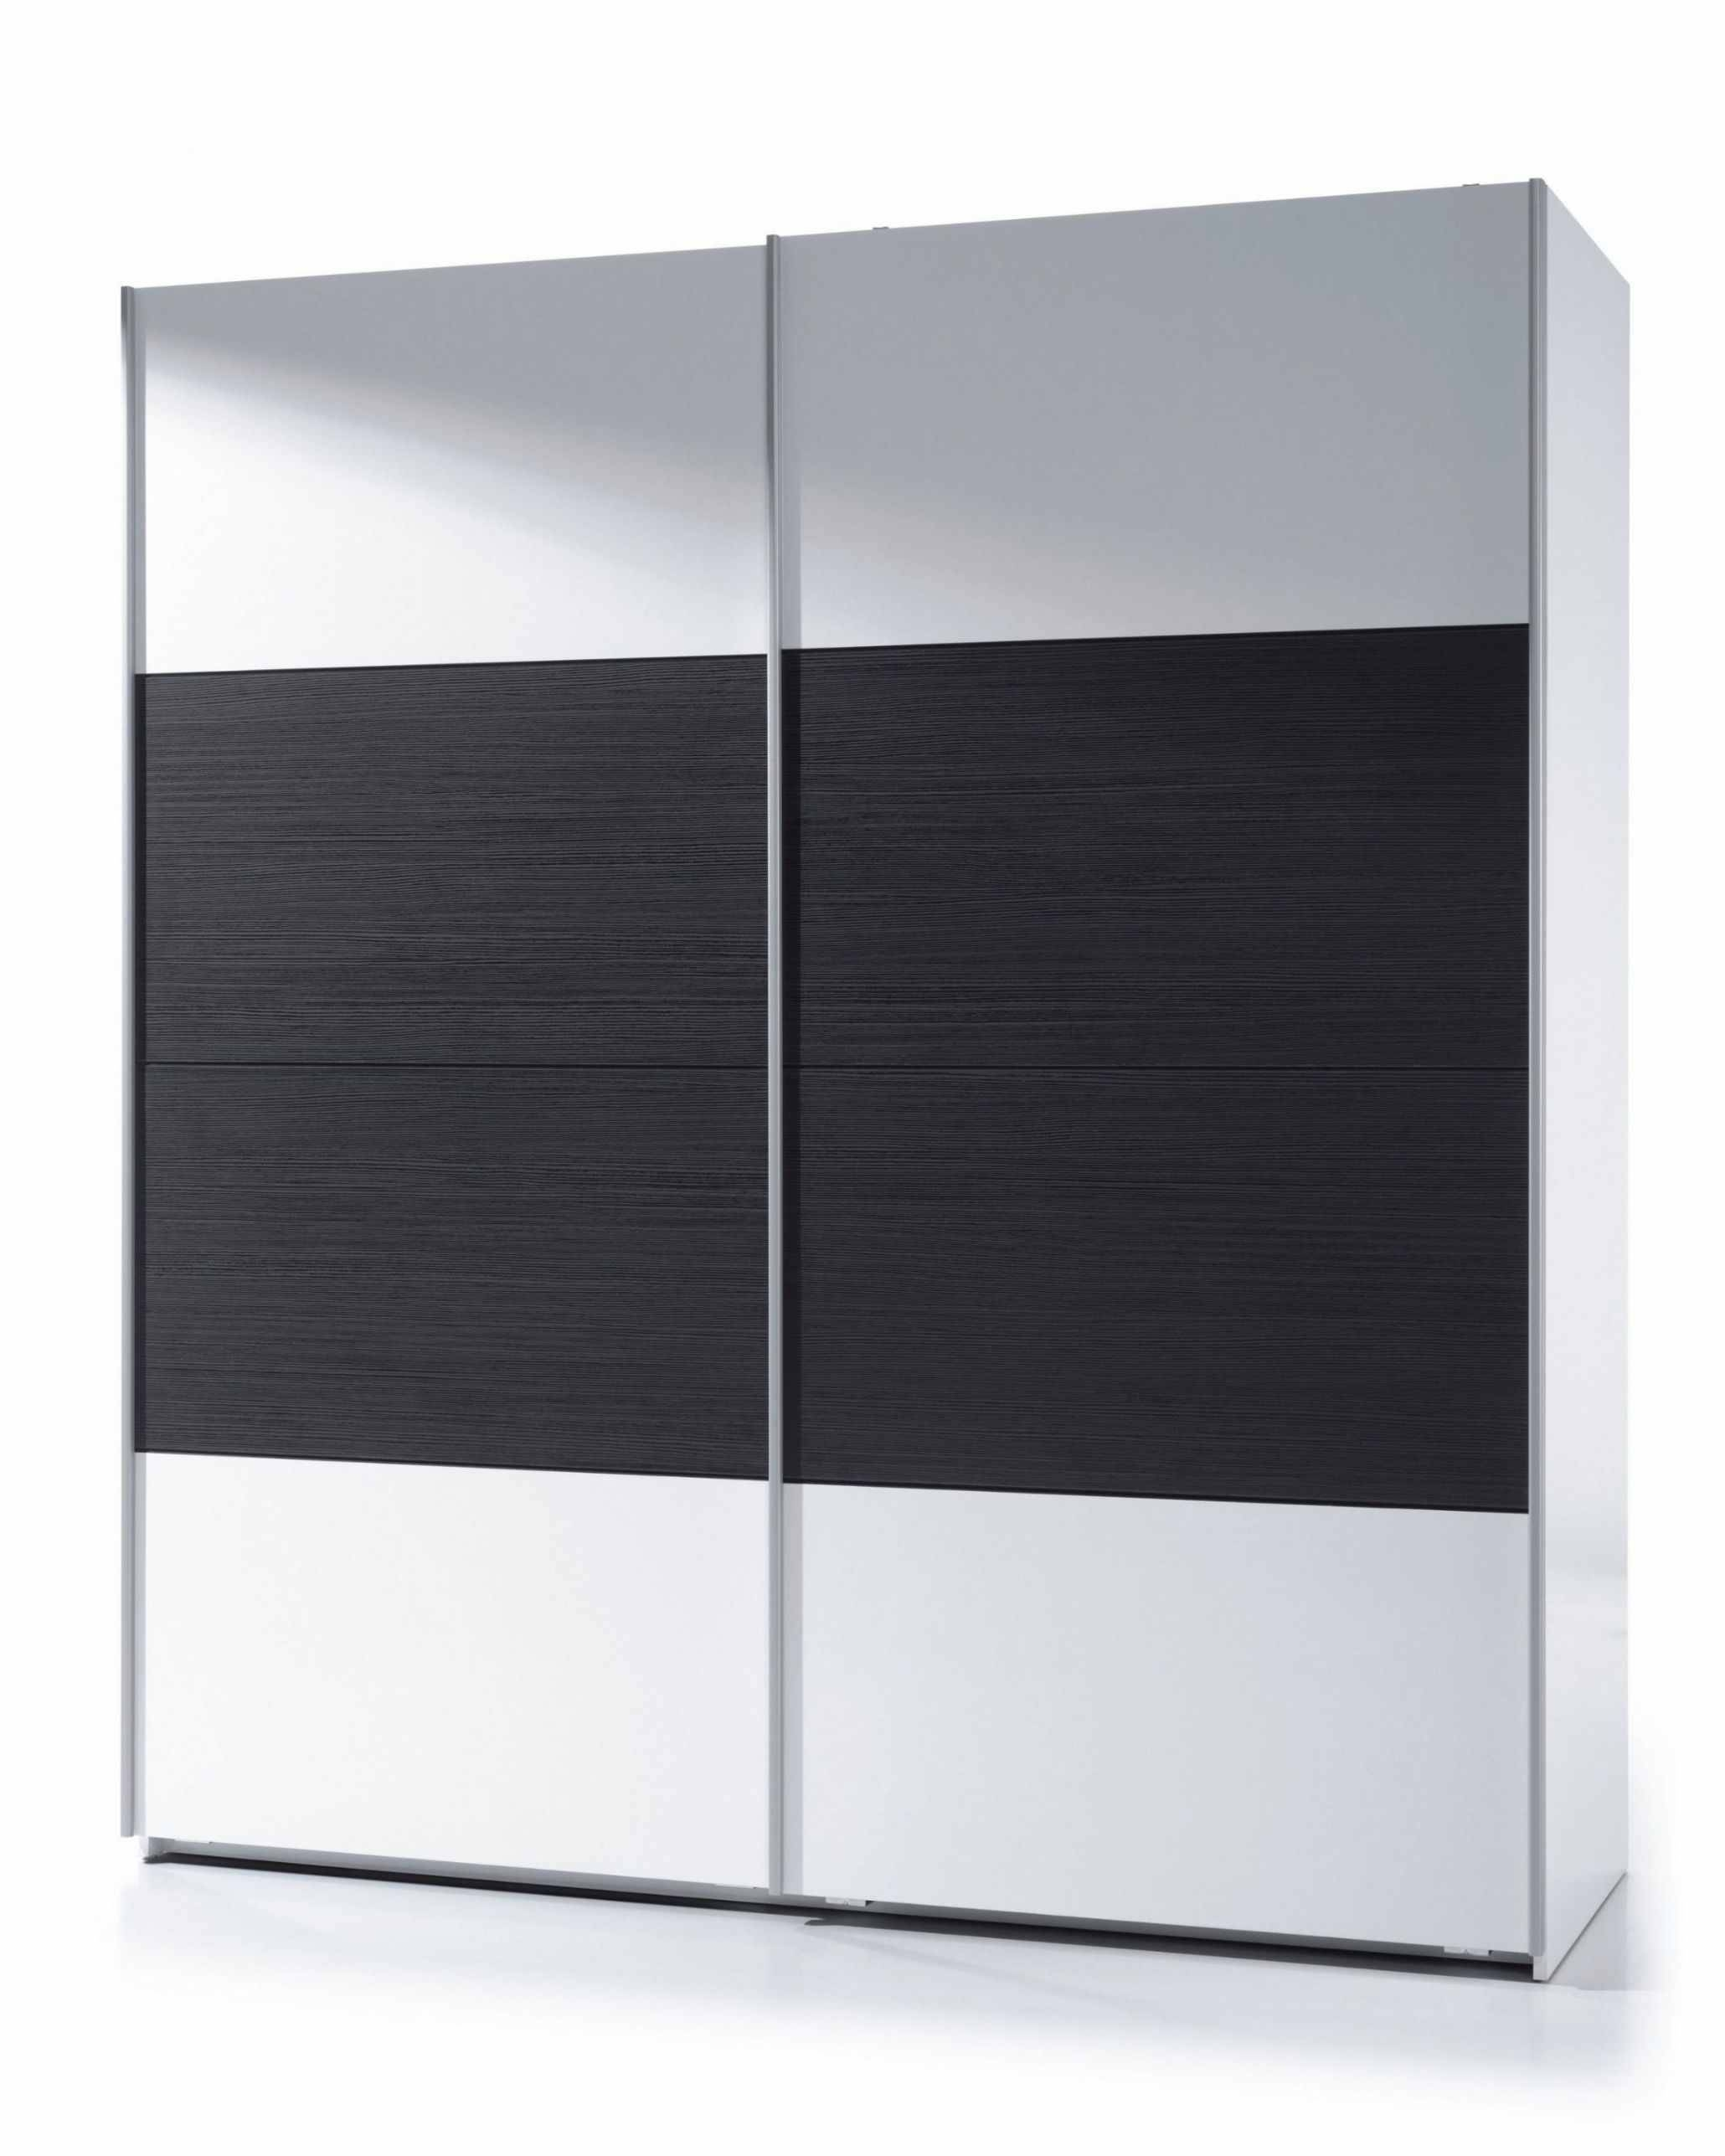 Napoli Black Wood And White Gloss Sliding Wardrobe – Bedroom Furniture In Black Wood Wardrobes (View 11 of 15)